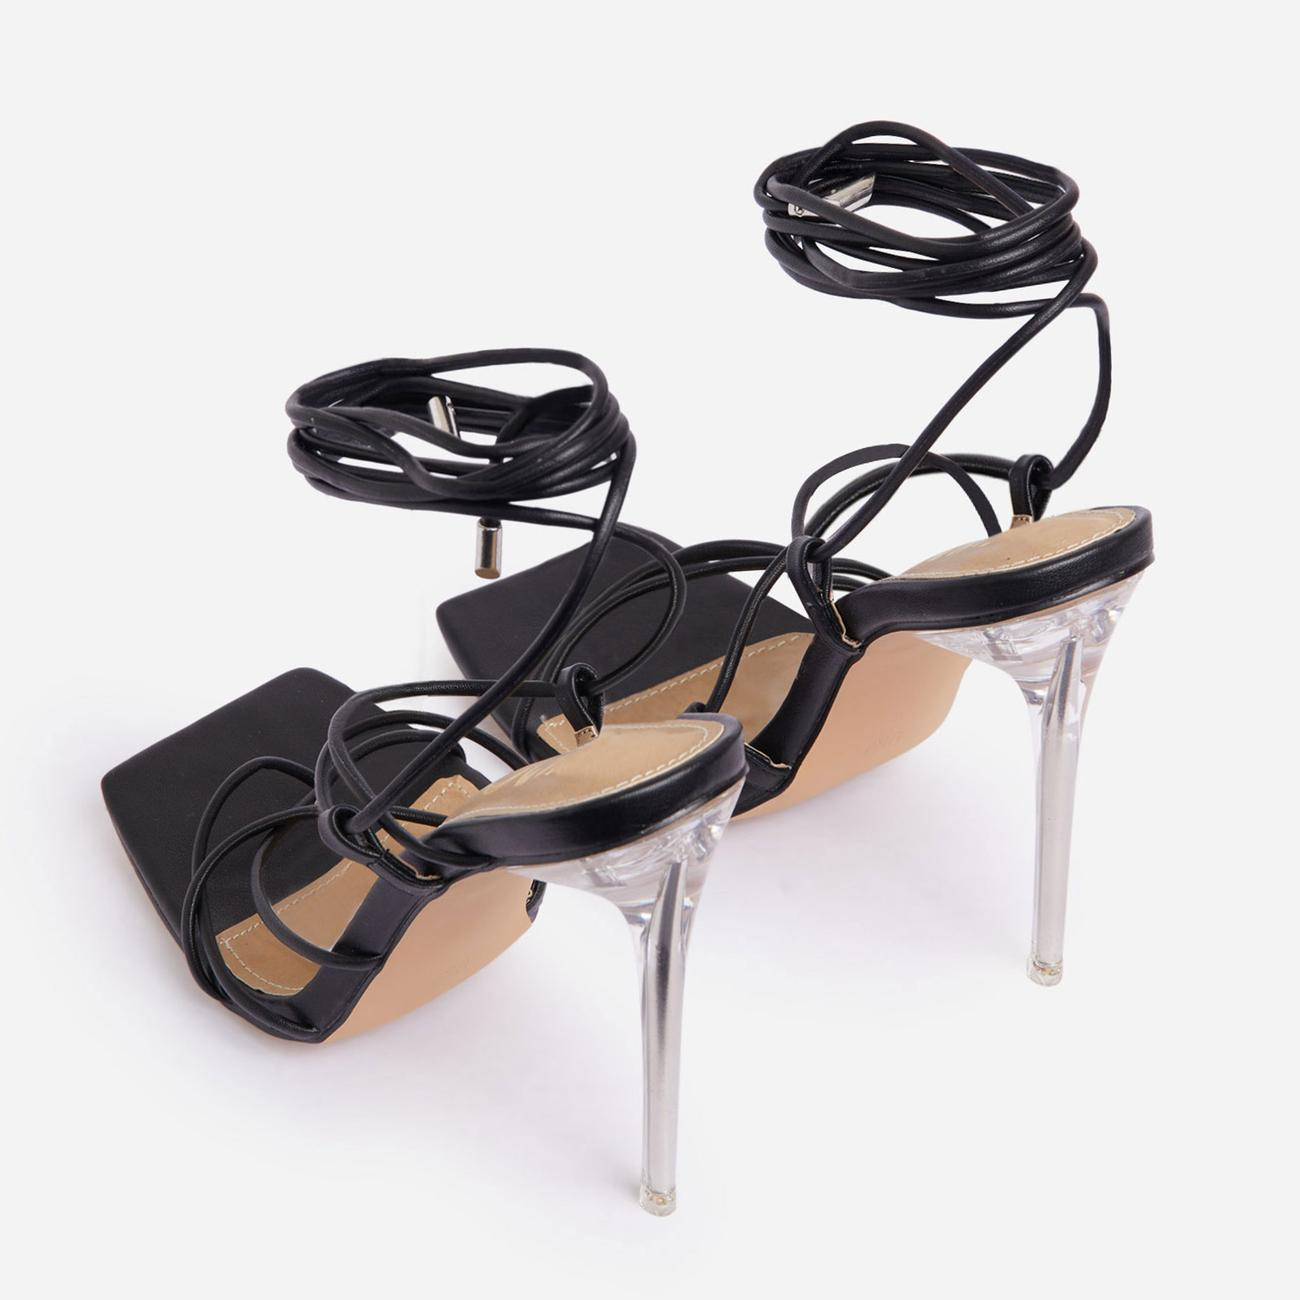 Sunbathe Square Toe Lace Up Clear Perspex Heel In Black Faux Leather Image 3